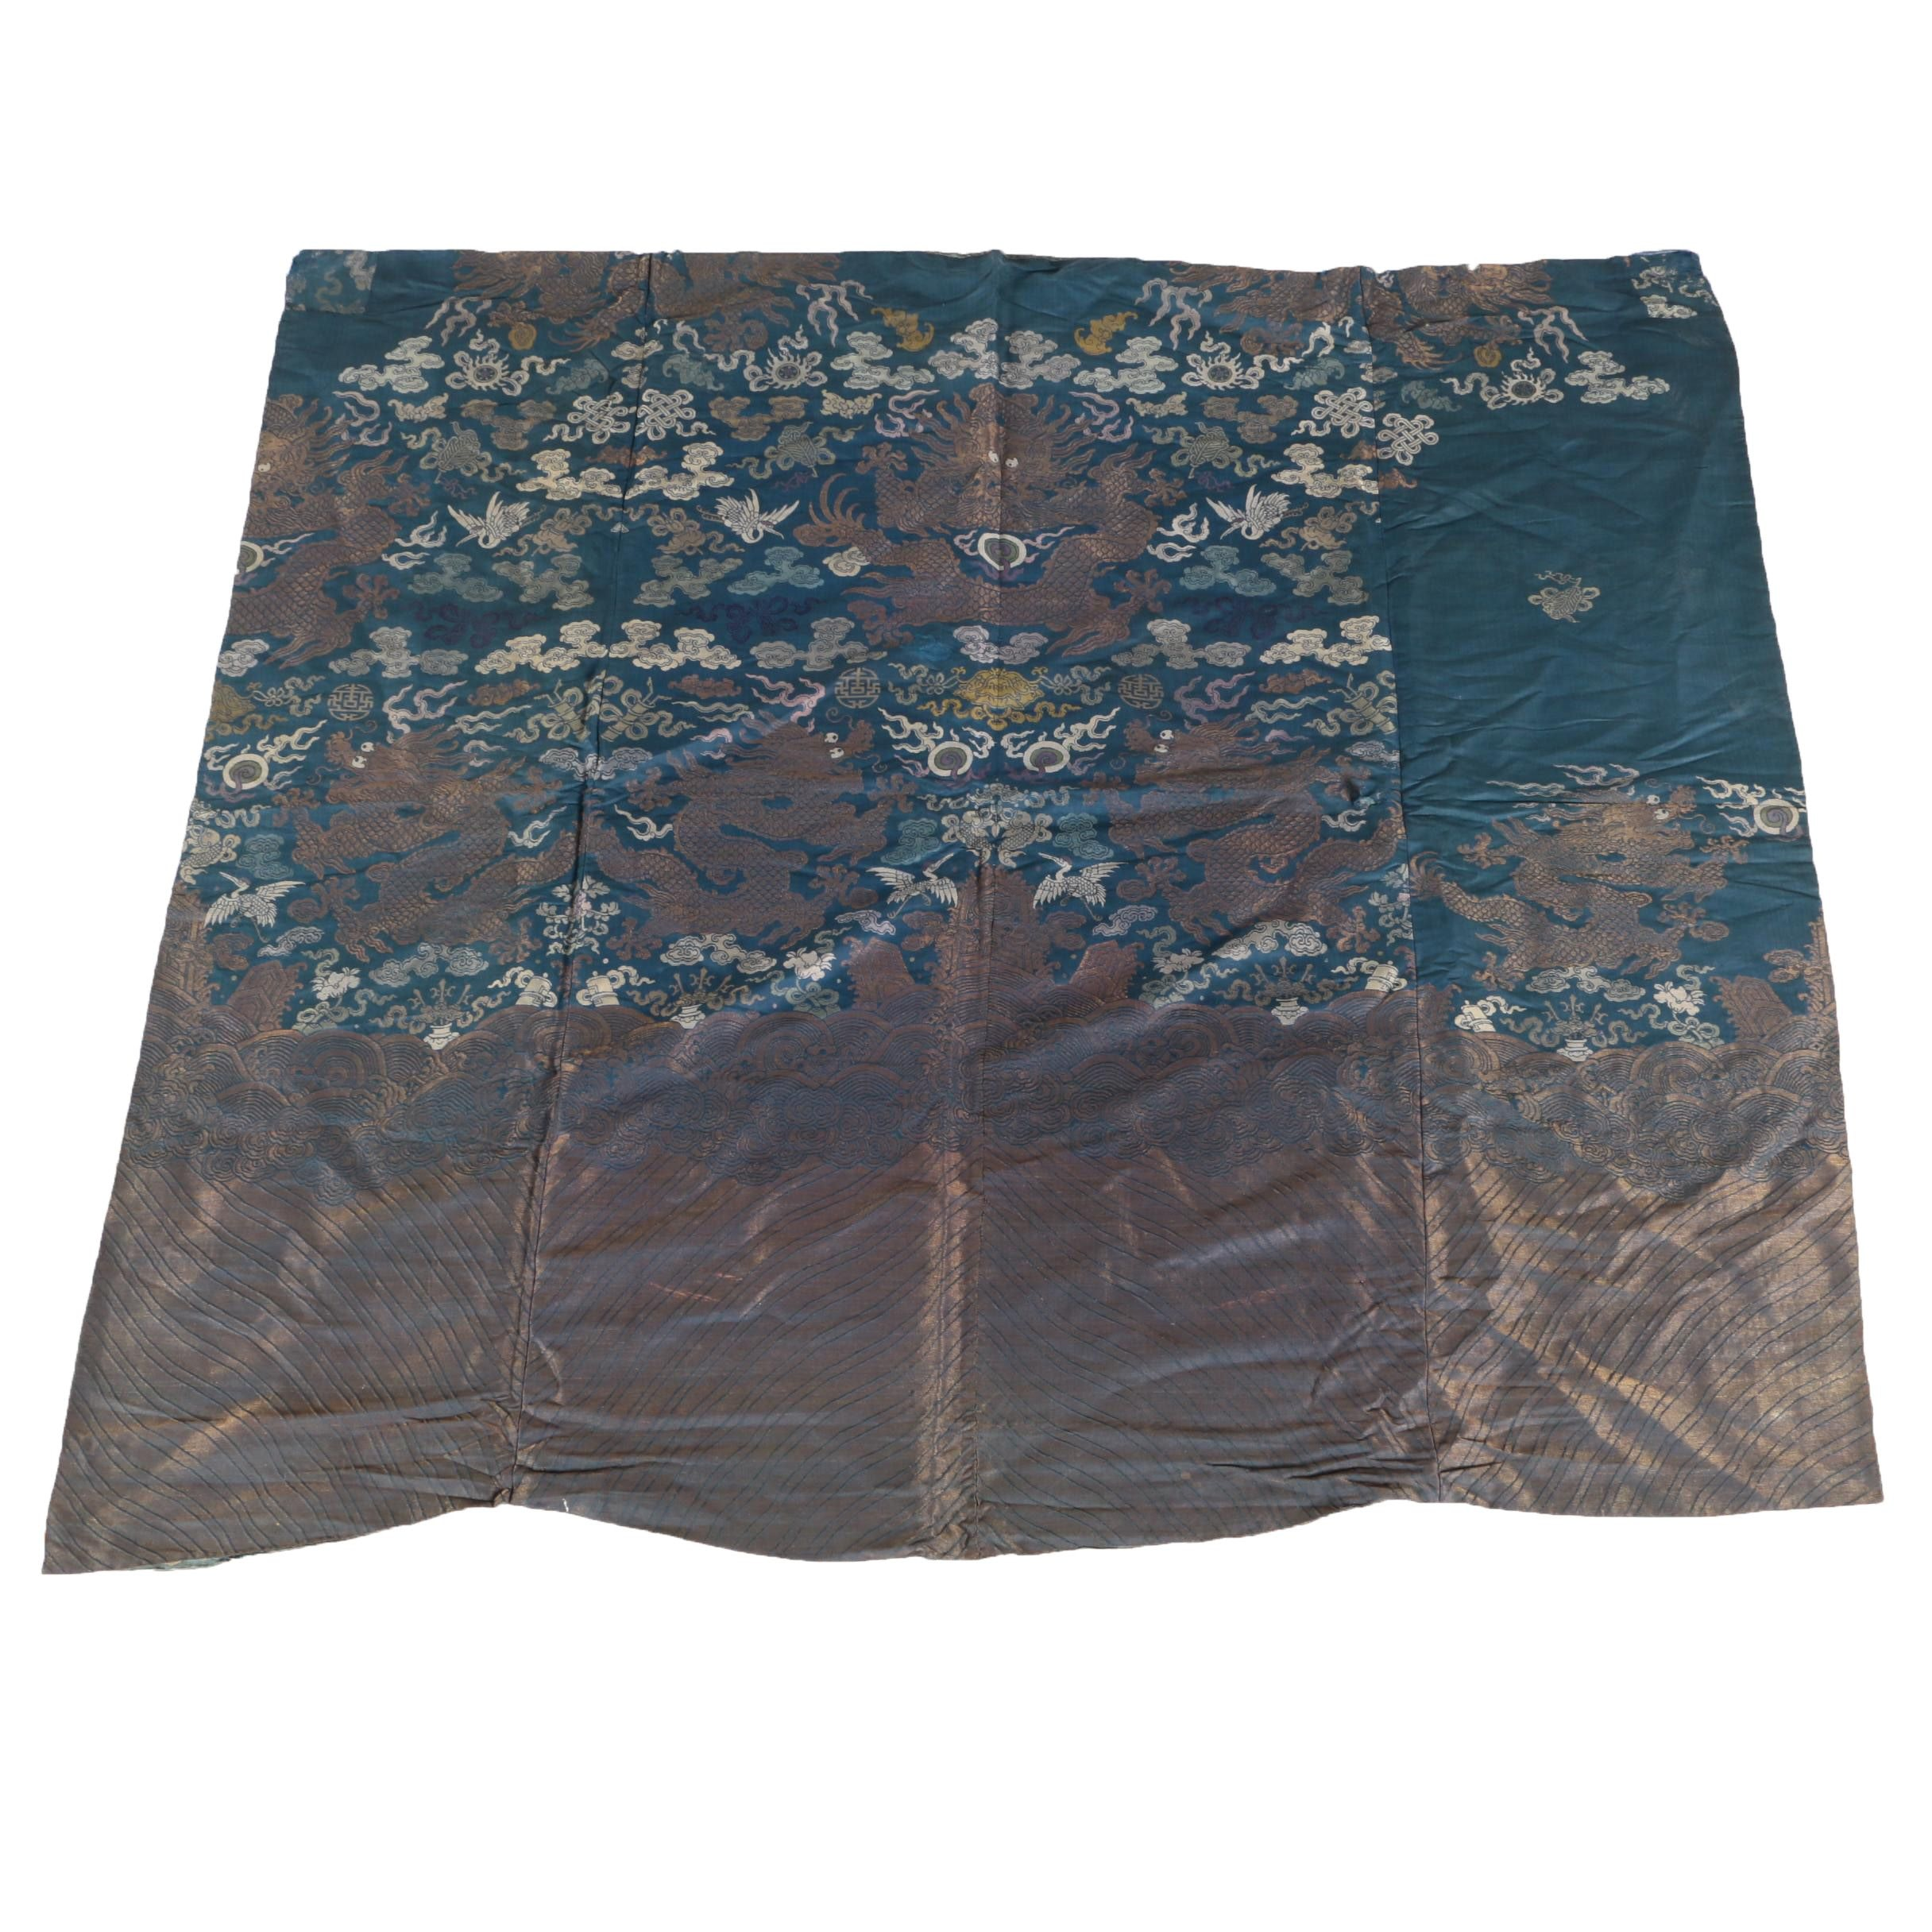 Vintage Chinese Woven Silk Fabric for Jifu Robe